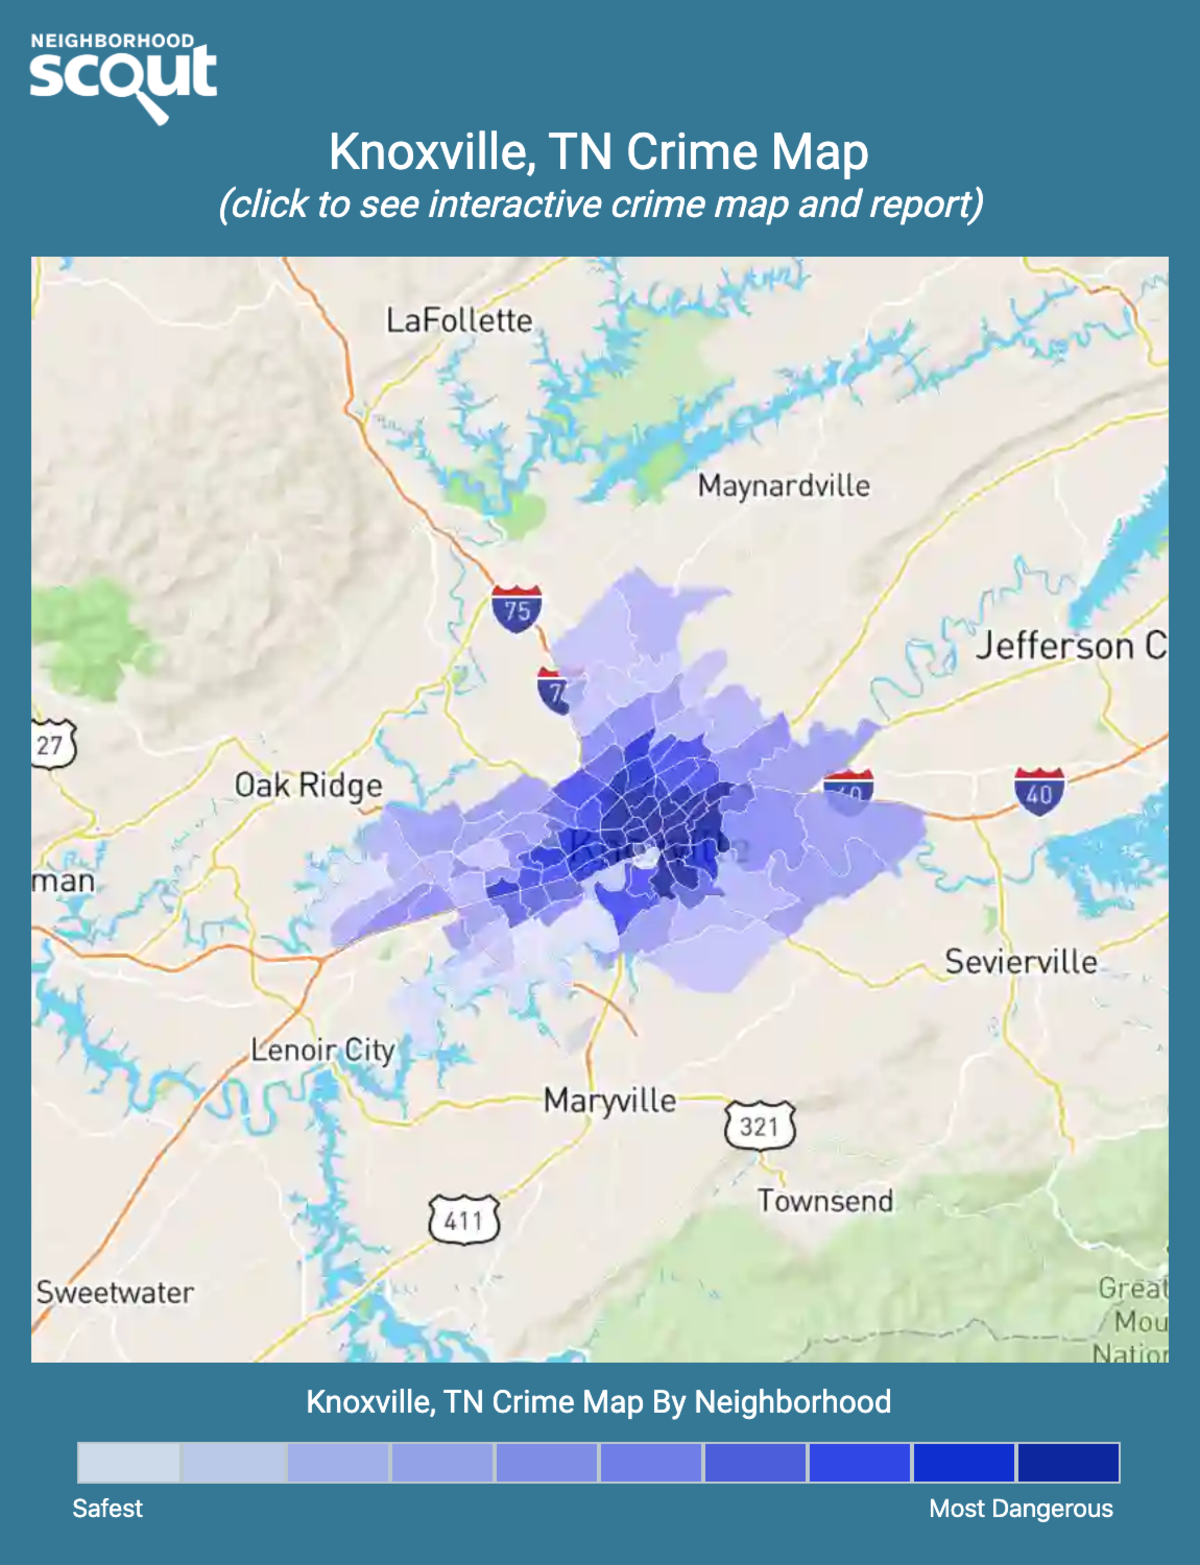 Knoxville, Tennessee crime map